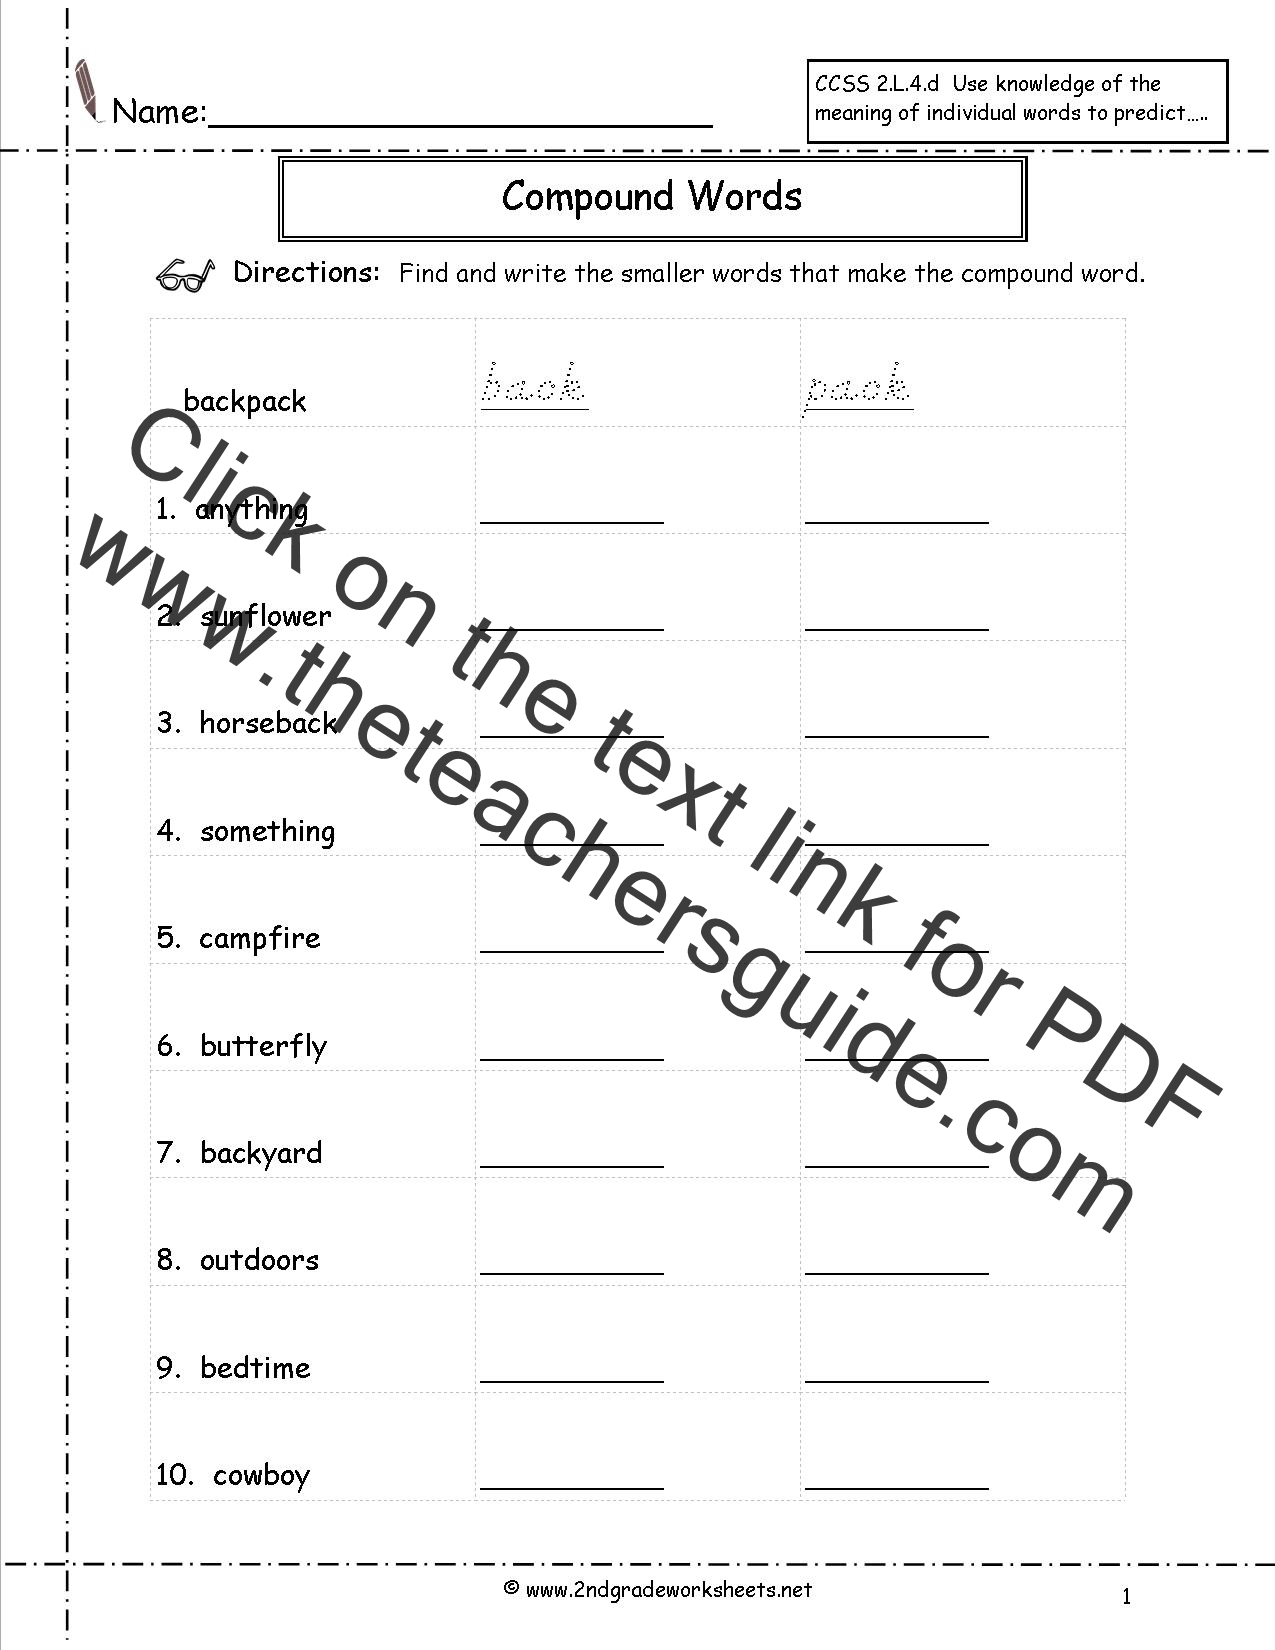 Printables 2nd Grade Ela Worksheets free languagegrammar worksheets and printouts compound words worksheets